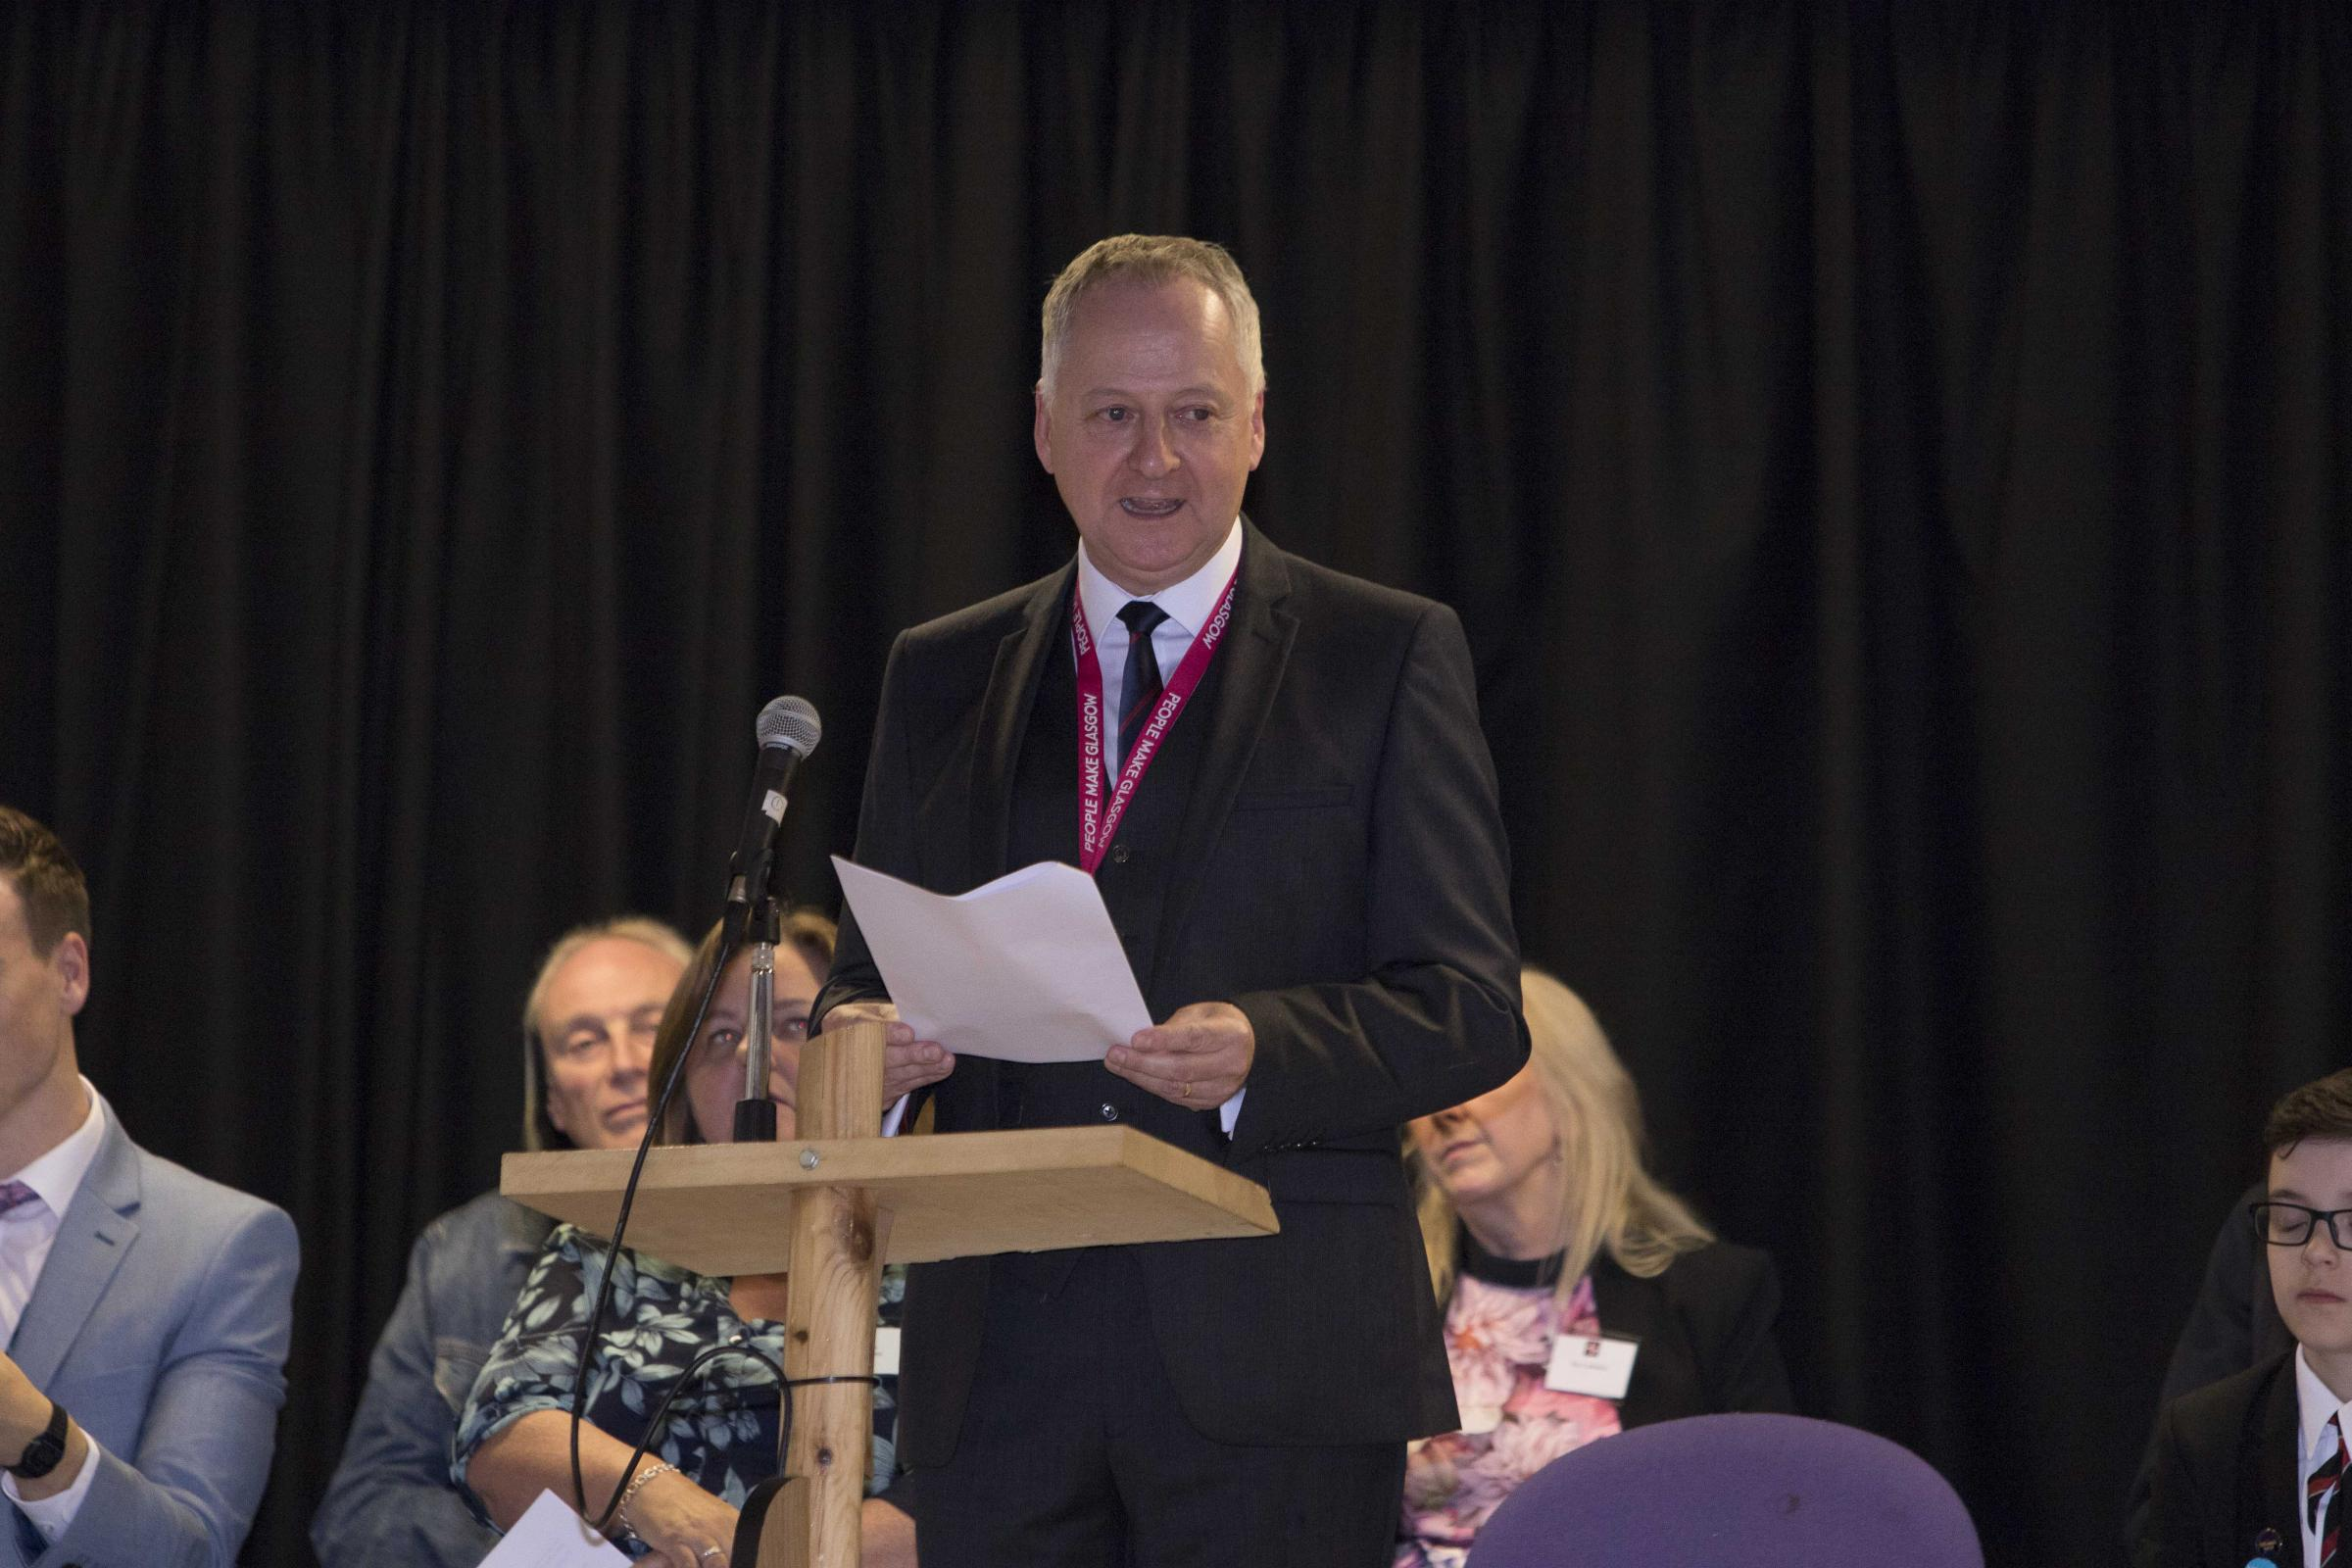 Drumchapel High head confirms he's moving to Helensburgh